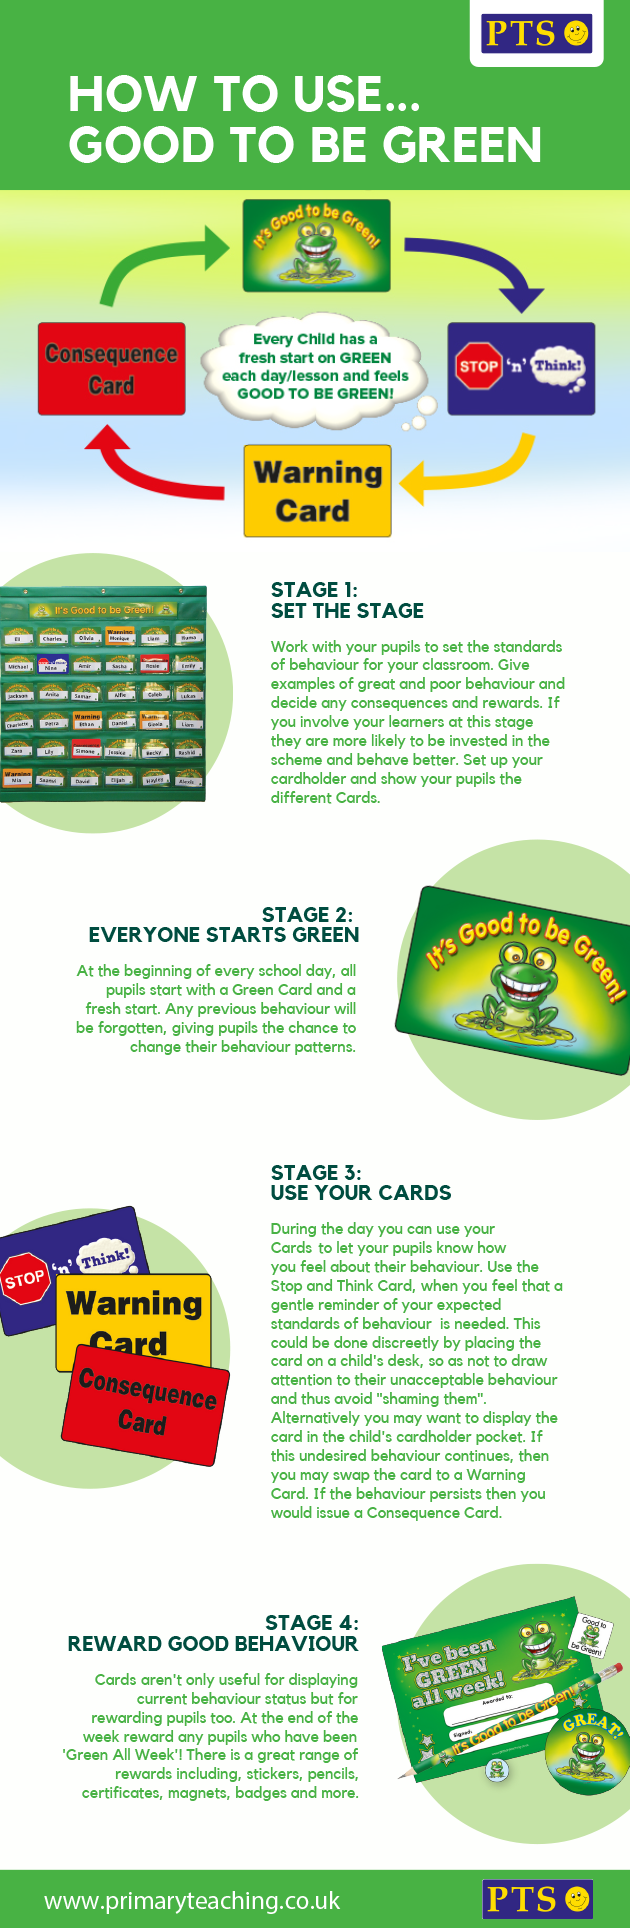 Good to be Green Infographic